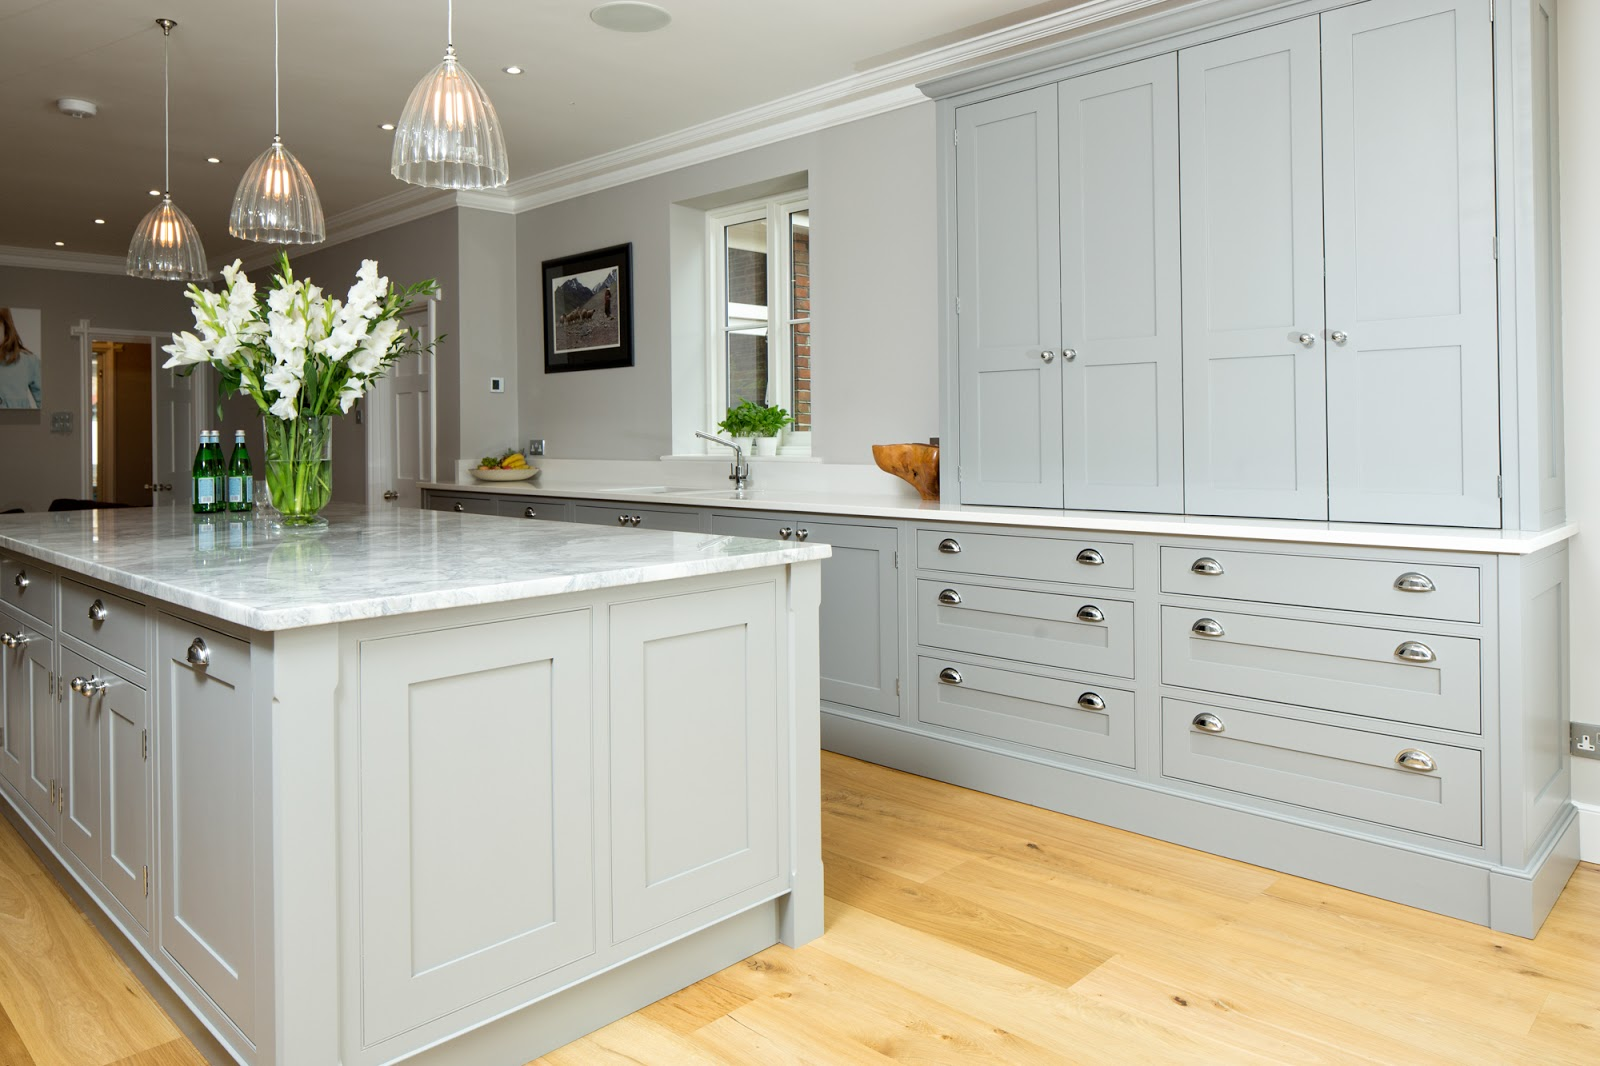 White and Gray Kitchen Cabinets